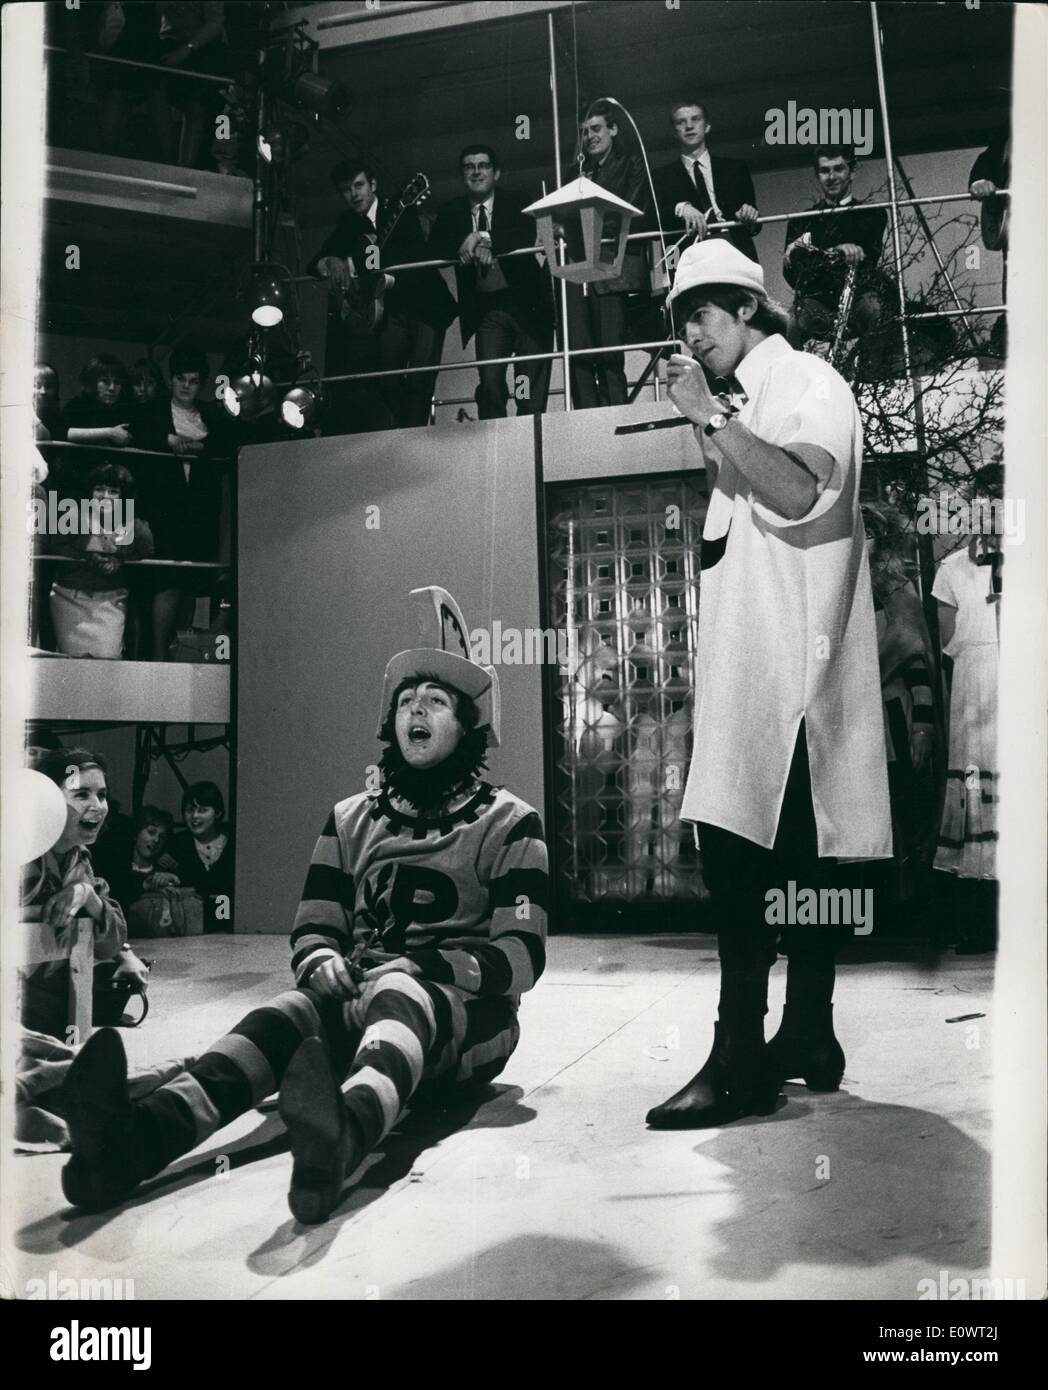 Apr. 04, 1964 - Beatles go Shakespearean : The Beatles are shortly to appear in a television show in which part of their performance will be an exerpt from ''A Midsummer Night's Dream'' by William Shakespeare. The results are enough to make Shakespeare''twist and shout'' in his grave. Photo shows Paul McCartney as ''Bottom'' sits on the stage while George Harrison as ''Moonshine'' stands over him. - Stock Image